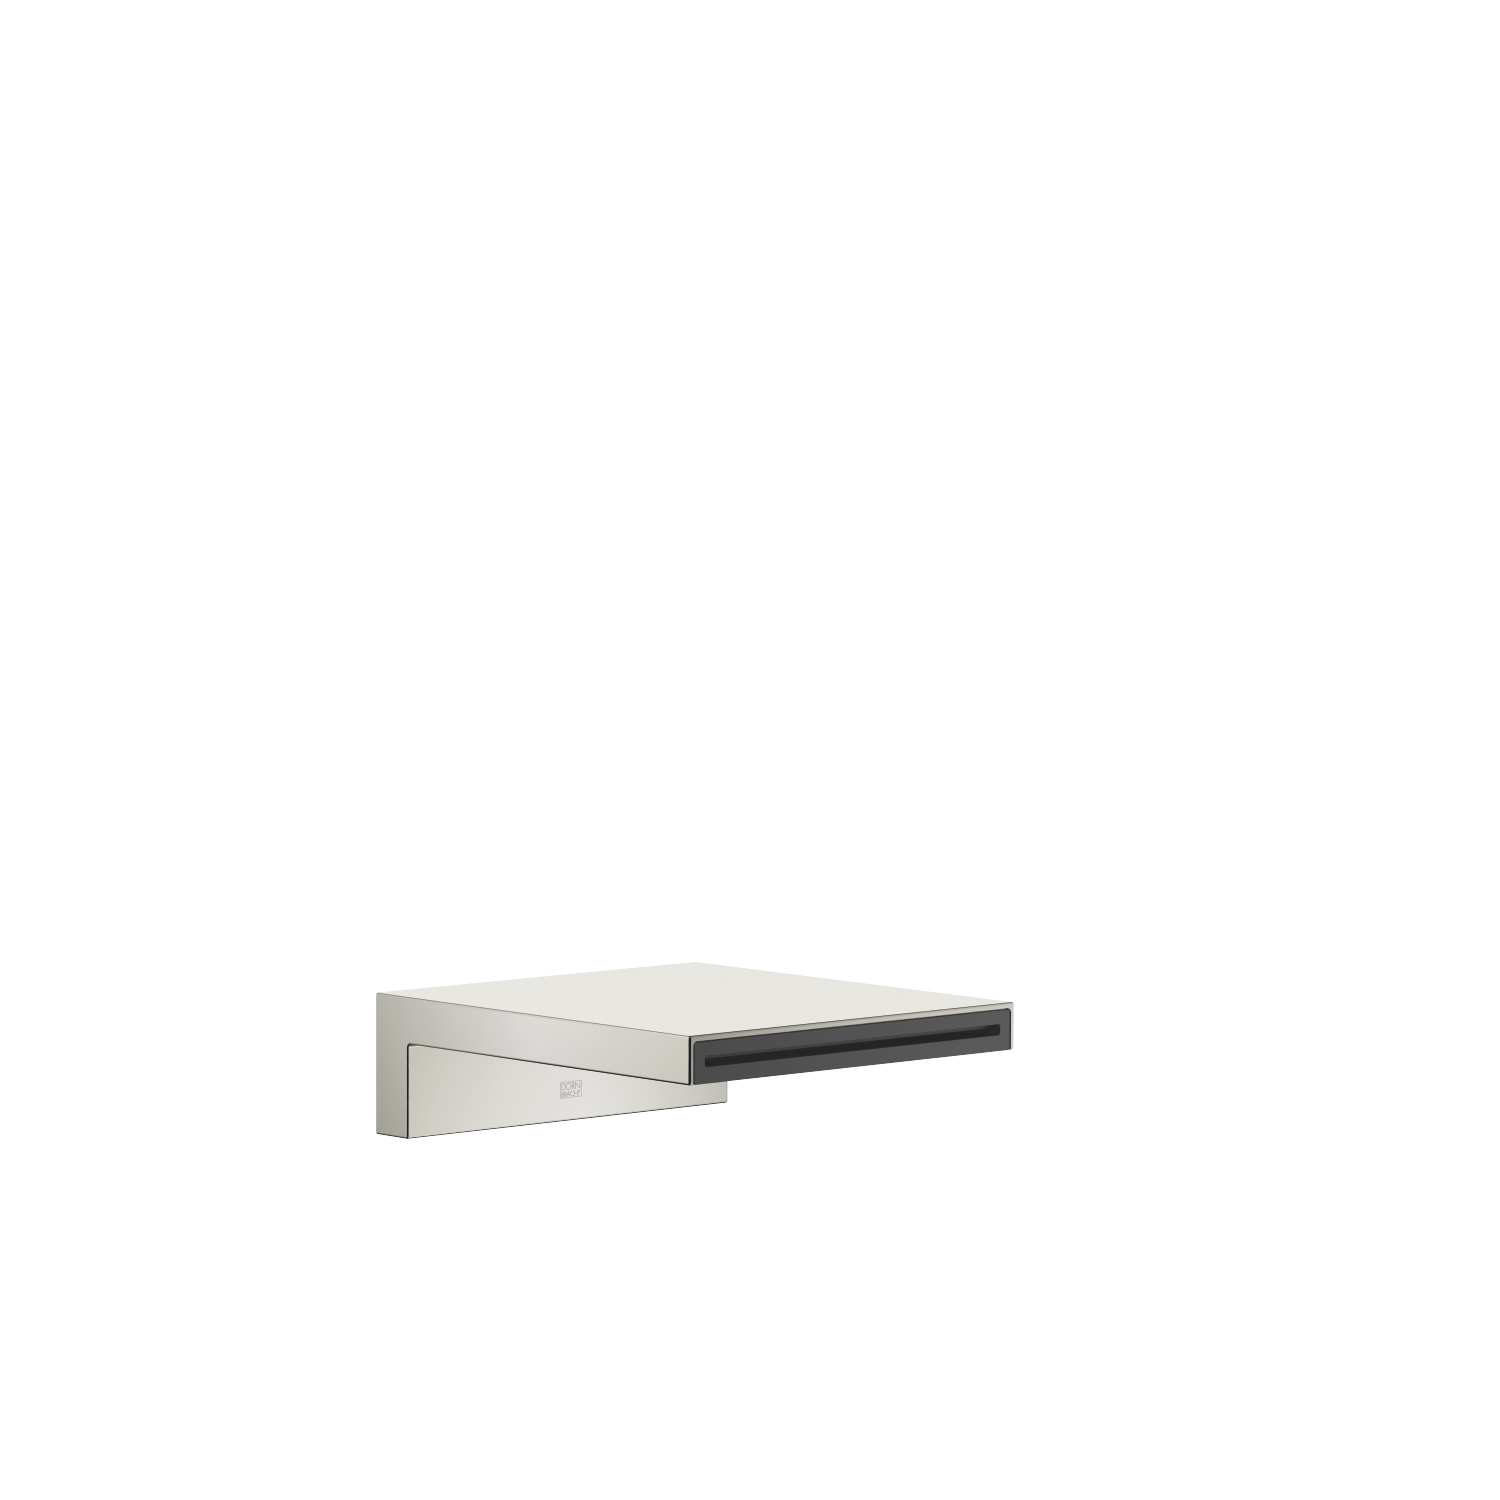 Bath cascade spout for wall mounting - platinum matt